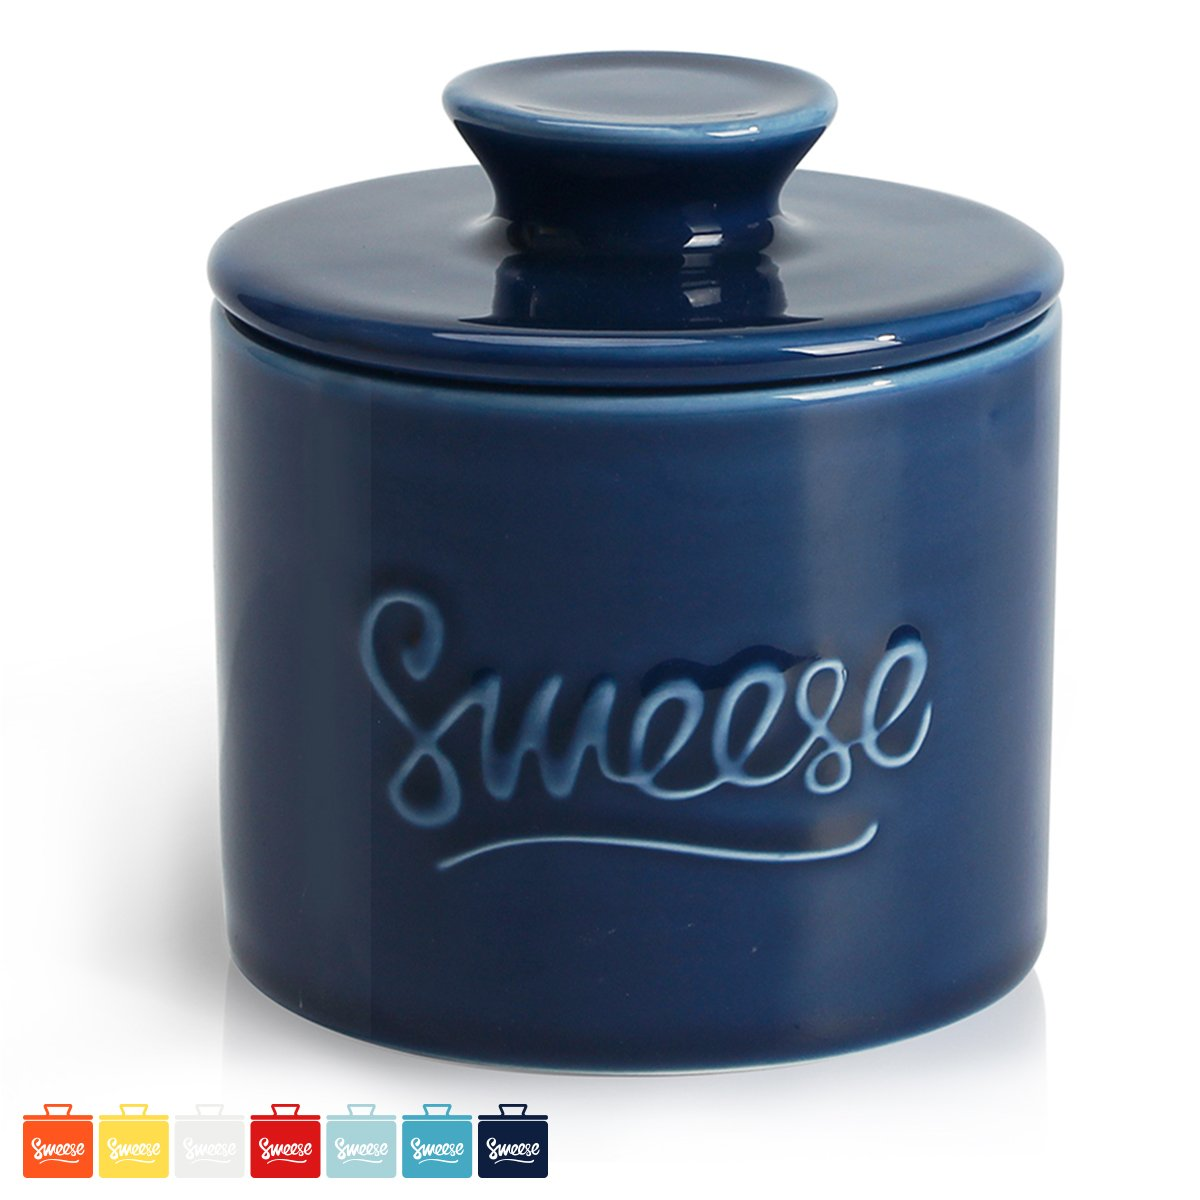 【Flash Deal】Sweese 3104 Porcelain Butter Keeper Crock - French Butter Dish - No More Hard Butter - Perfect Spreadable Consistency, Navy